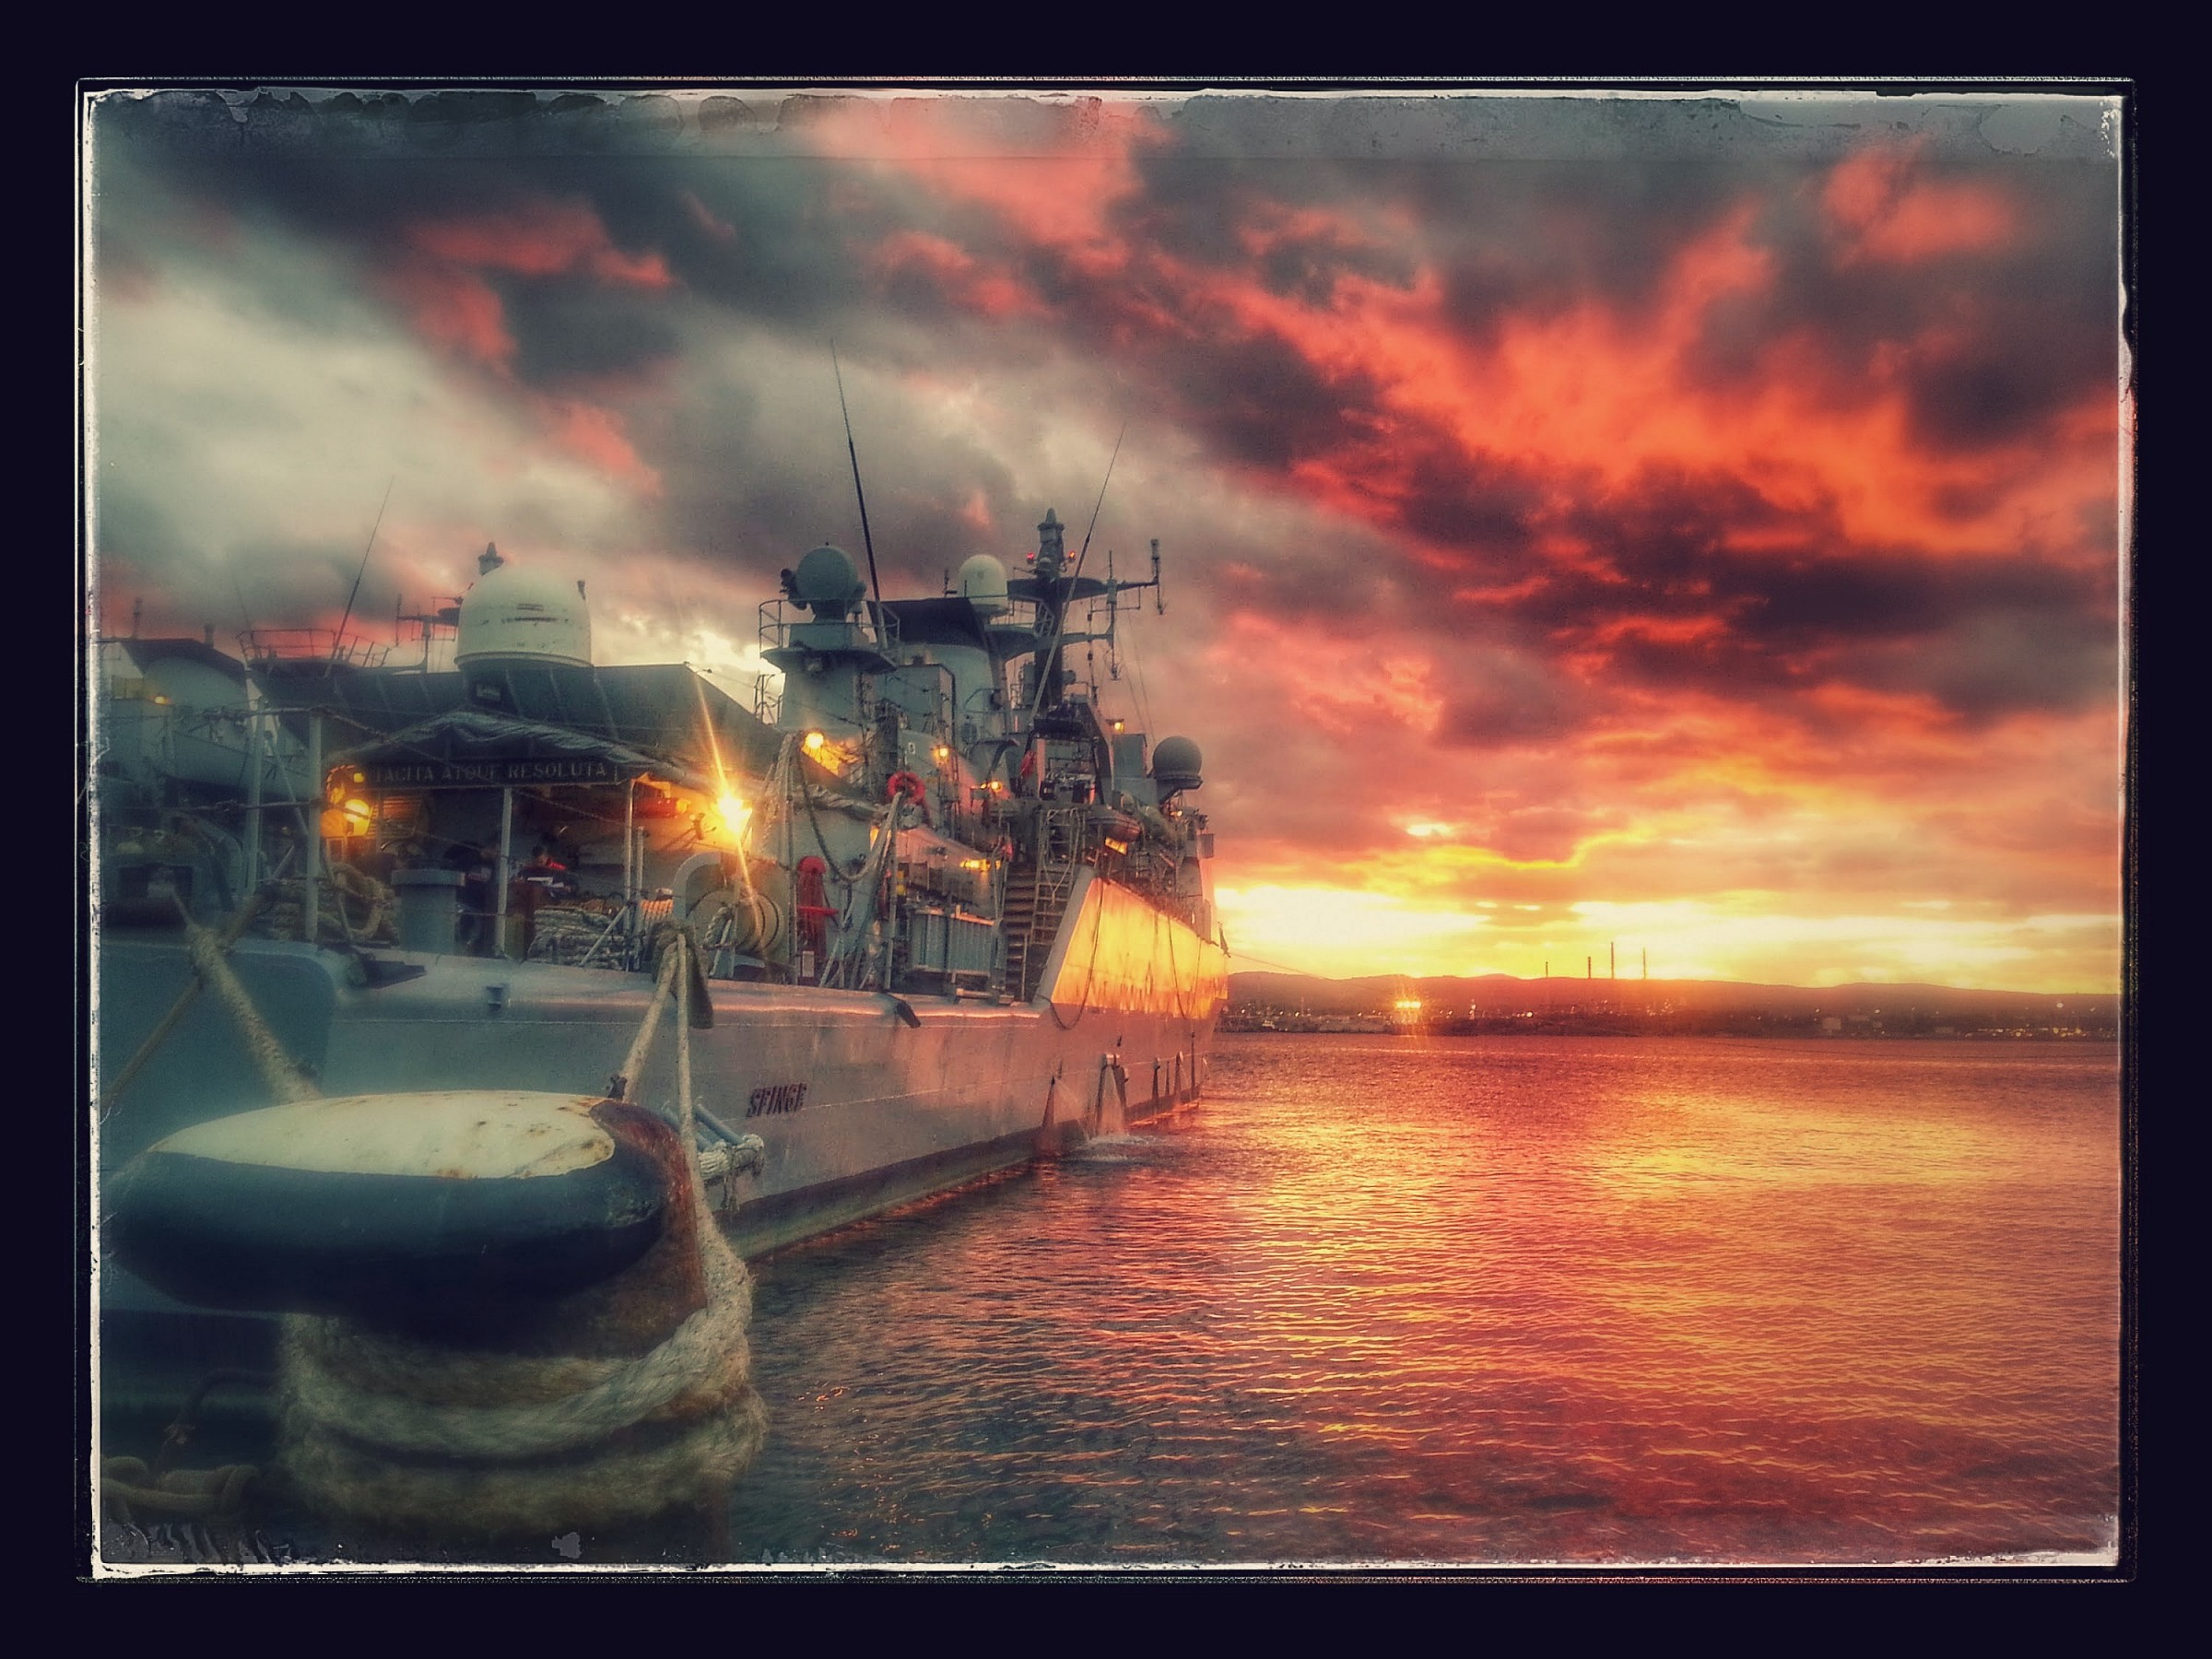 sunset on the dock Destroyer...